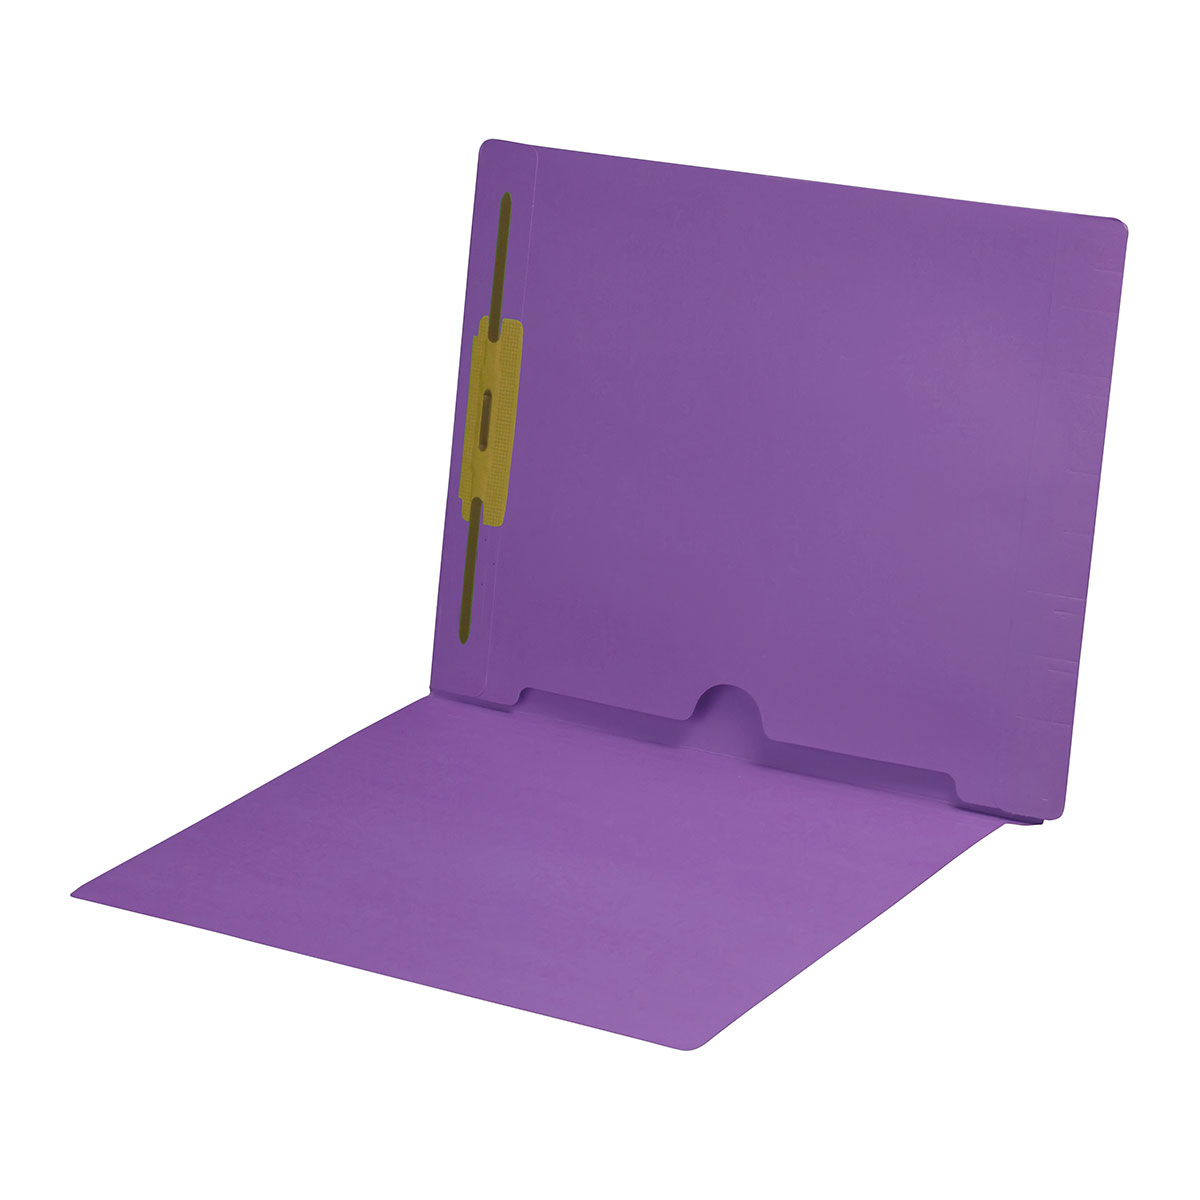 S-9018-LAV - 11 pt Lavender Folders, Full Cut End Tab, Letter Size, Full Back Pocket, Fastener Pos #1 (Box of 50)